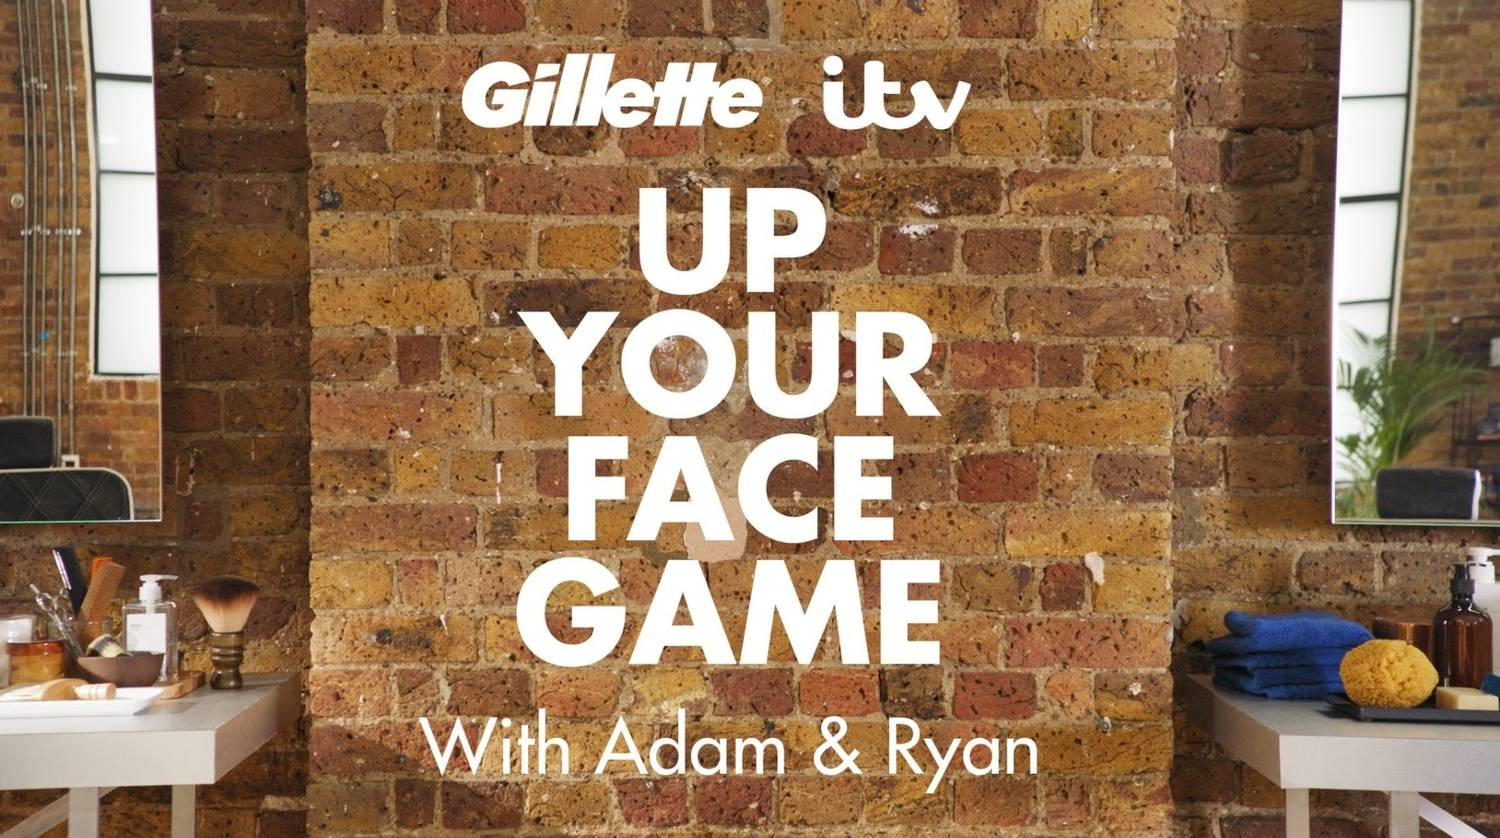 Gillette, ITV, Up your face game with Adam and Ryan